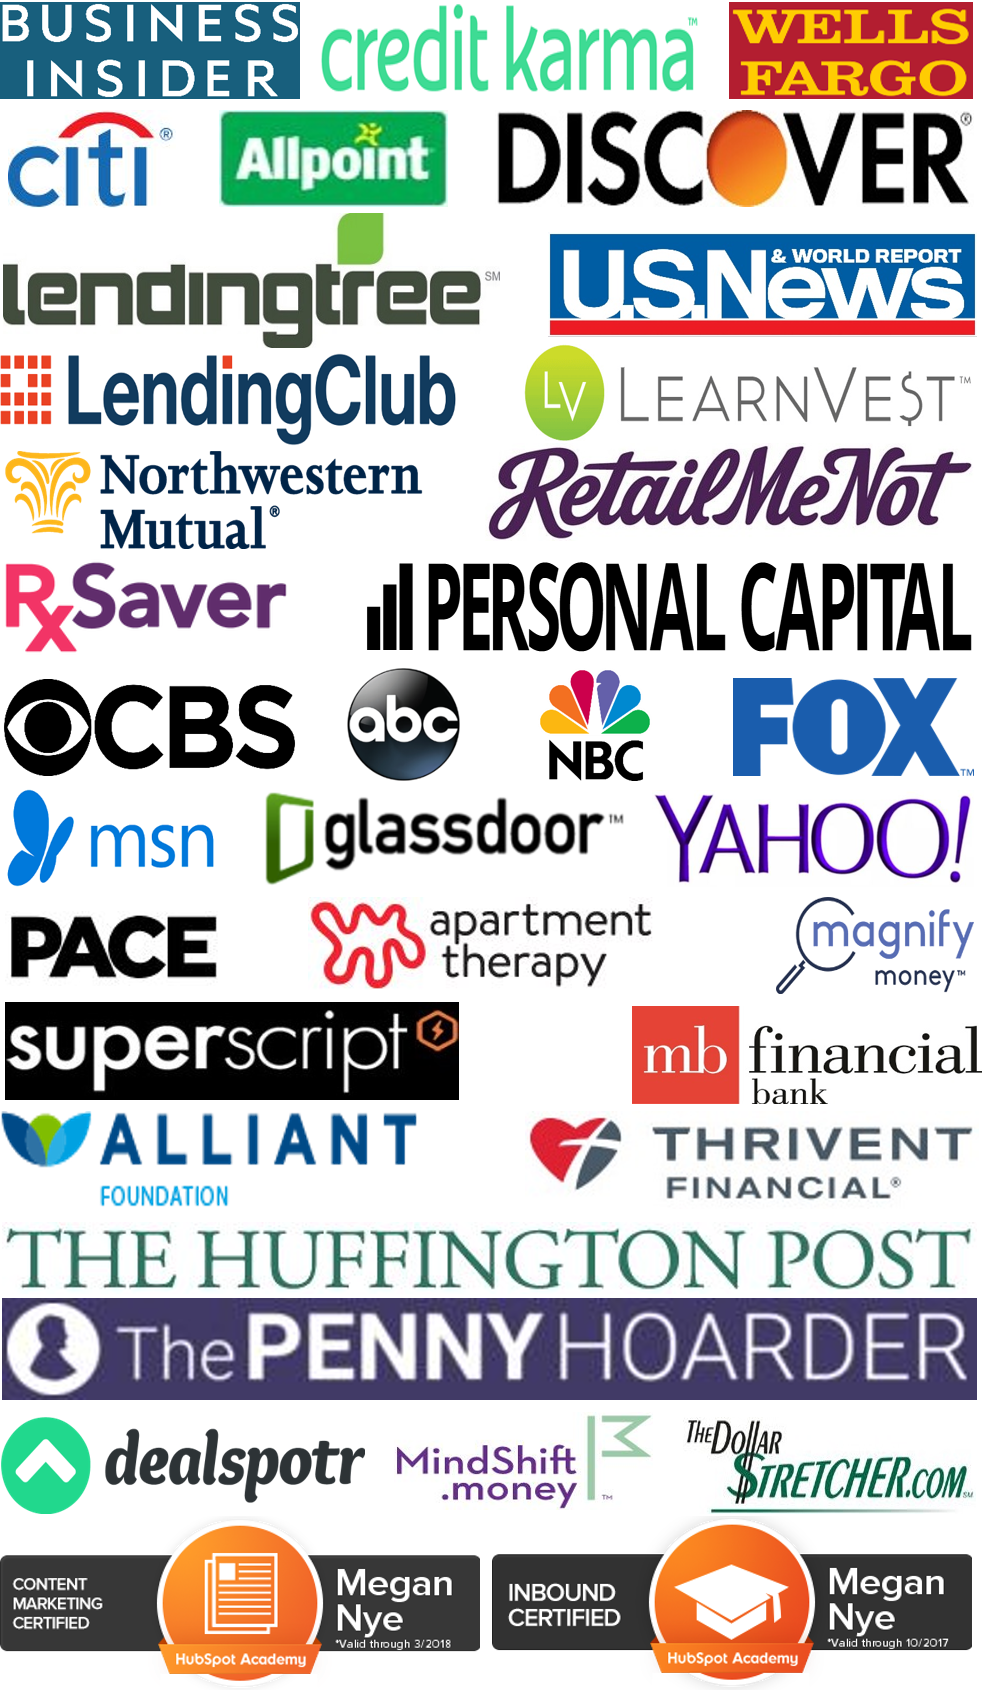 Business Insider, Wells Fargo, Allpoint, U.S. News & World Report, Citi, Credit Karma, Discover, Personal Capital, LendingClub, RxSaver, RetailMeNot, Cardtronics, SuperScript Marketing, Pace Communications, Thrivent Magazine / Thrivent Financial, MB Financial Bank, Lending Tree, ABC, NBC, CBS, Magnify Money, MSN, Glassdoor, Yahoo, Apartment Therapy, FOX, Northwestern Mutual, LearnVest, Alliant Credit Union Foundation, Vibrant Life, The Huffington Post, The Penny Hoarder, Focus on the Family Magazine, MindShift.money, The Dollar Stretcher, ChimpChange, Dealspotr, Our Sunday Visitor Newsweekly, Catholic Update, Hubspot Academy Content Marketing Certified, HubSpot Academy Inbound Certified